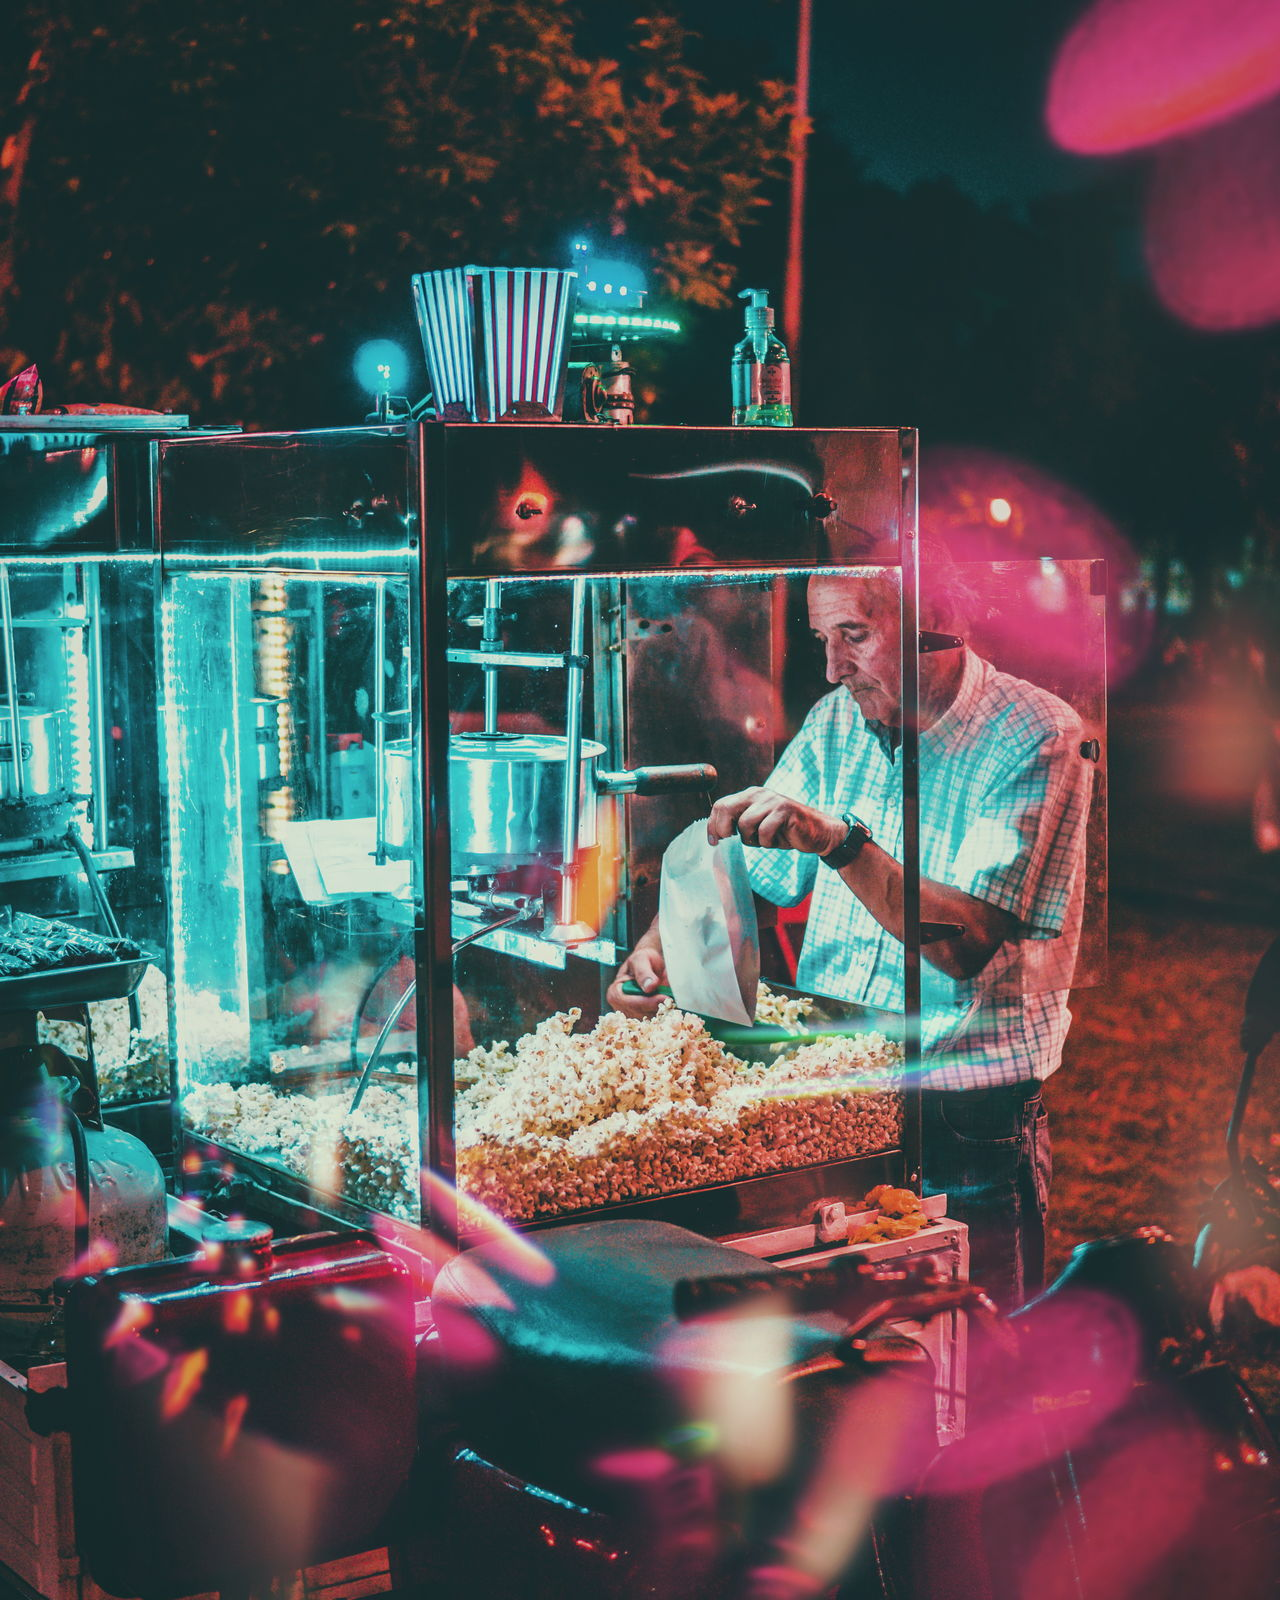 EyeEmNewHere night food people VSCO occupation streetphotography this week on eyeem Night Photography neon neon lights EyeEmBestPics one person Working Lights